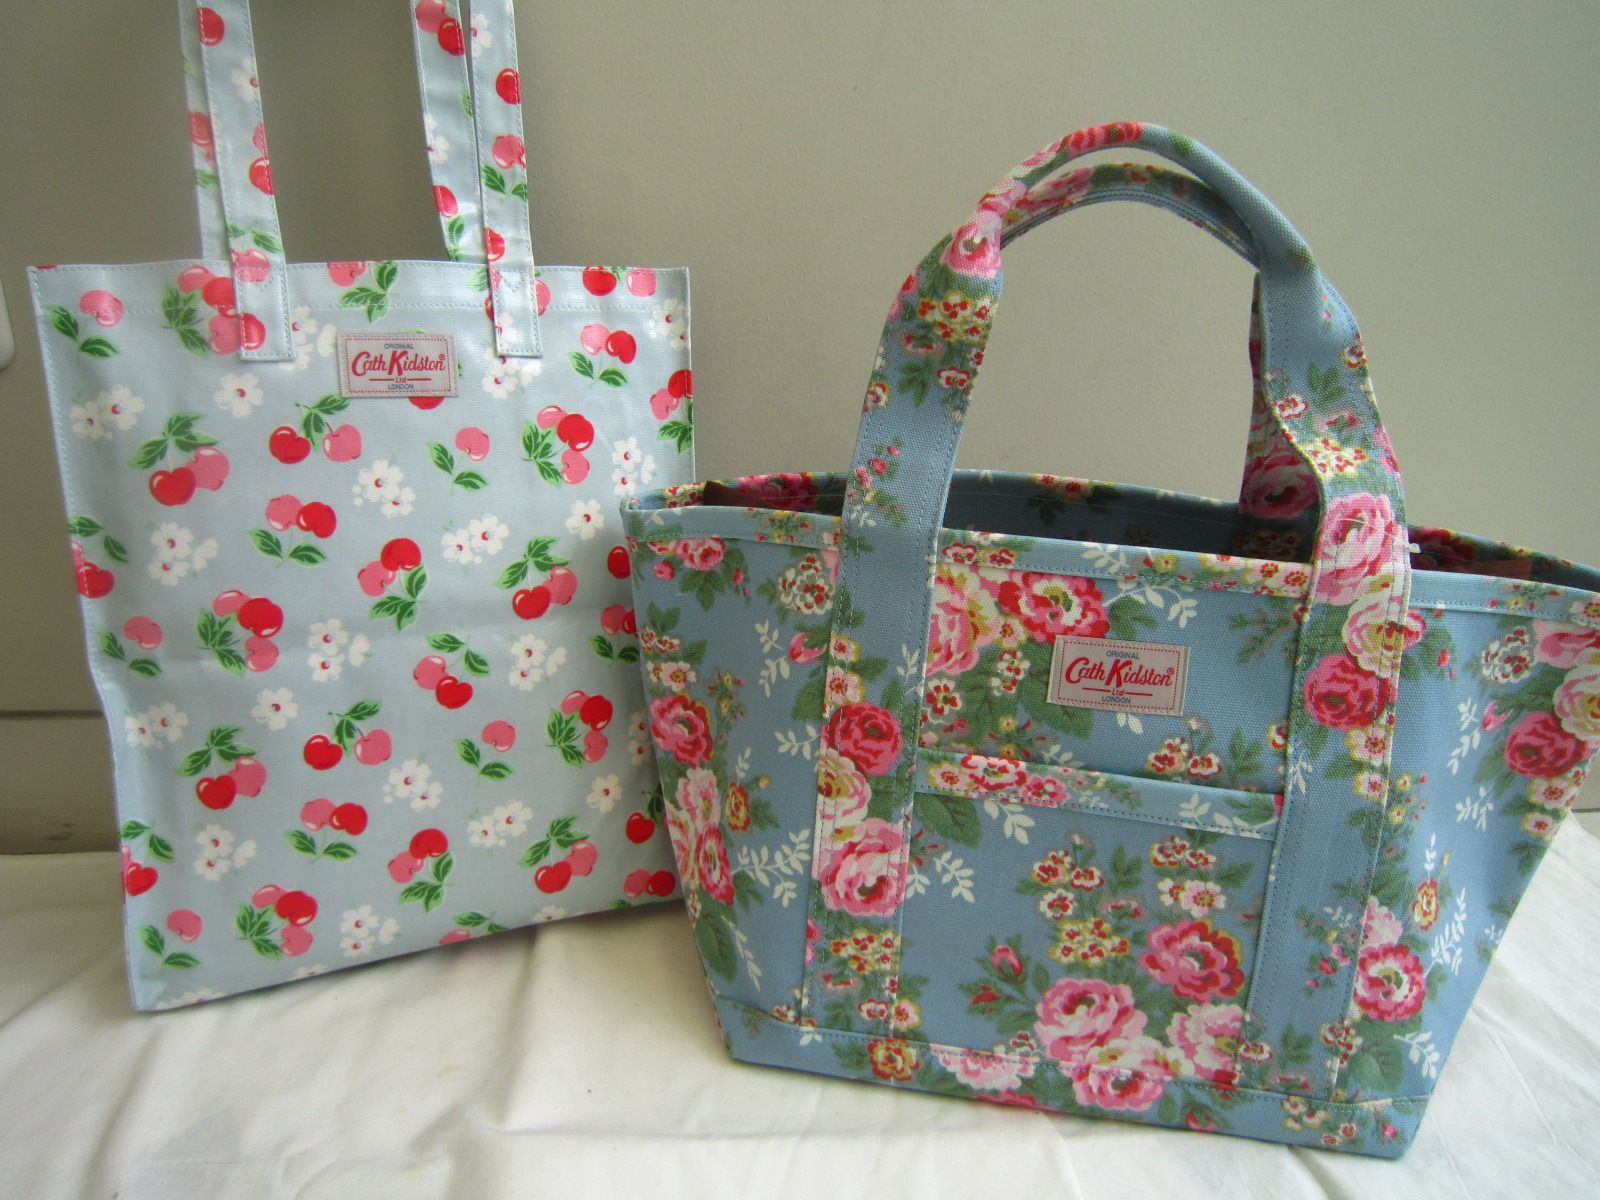 Cath Kidston Recent Shopping Haul